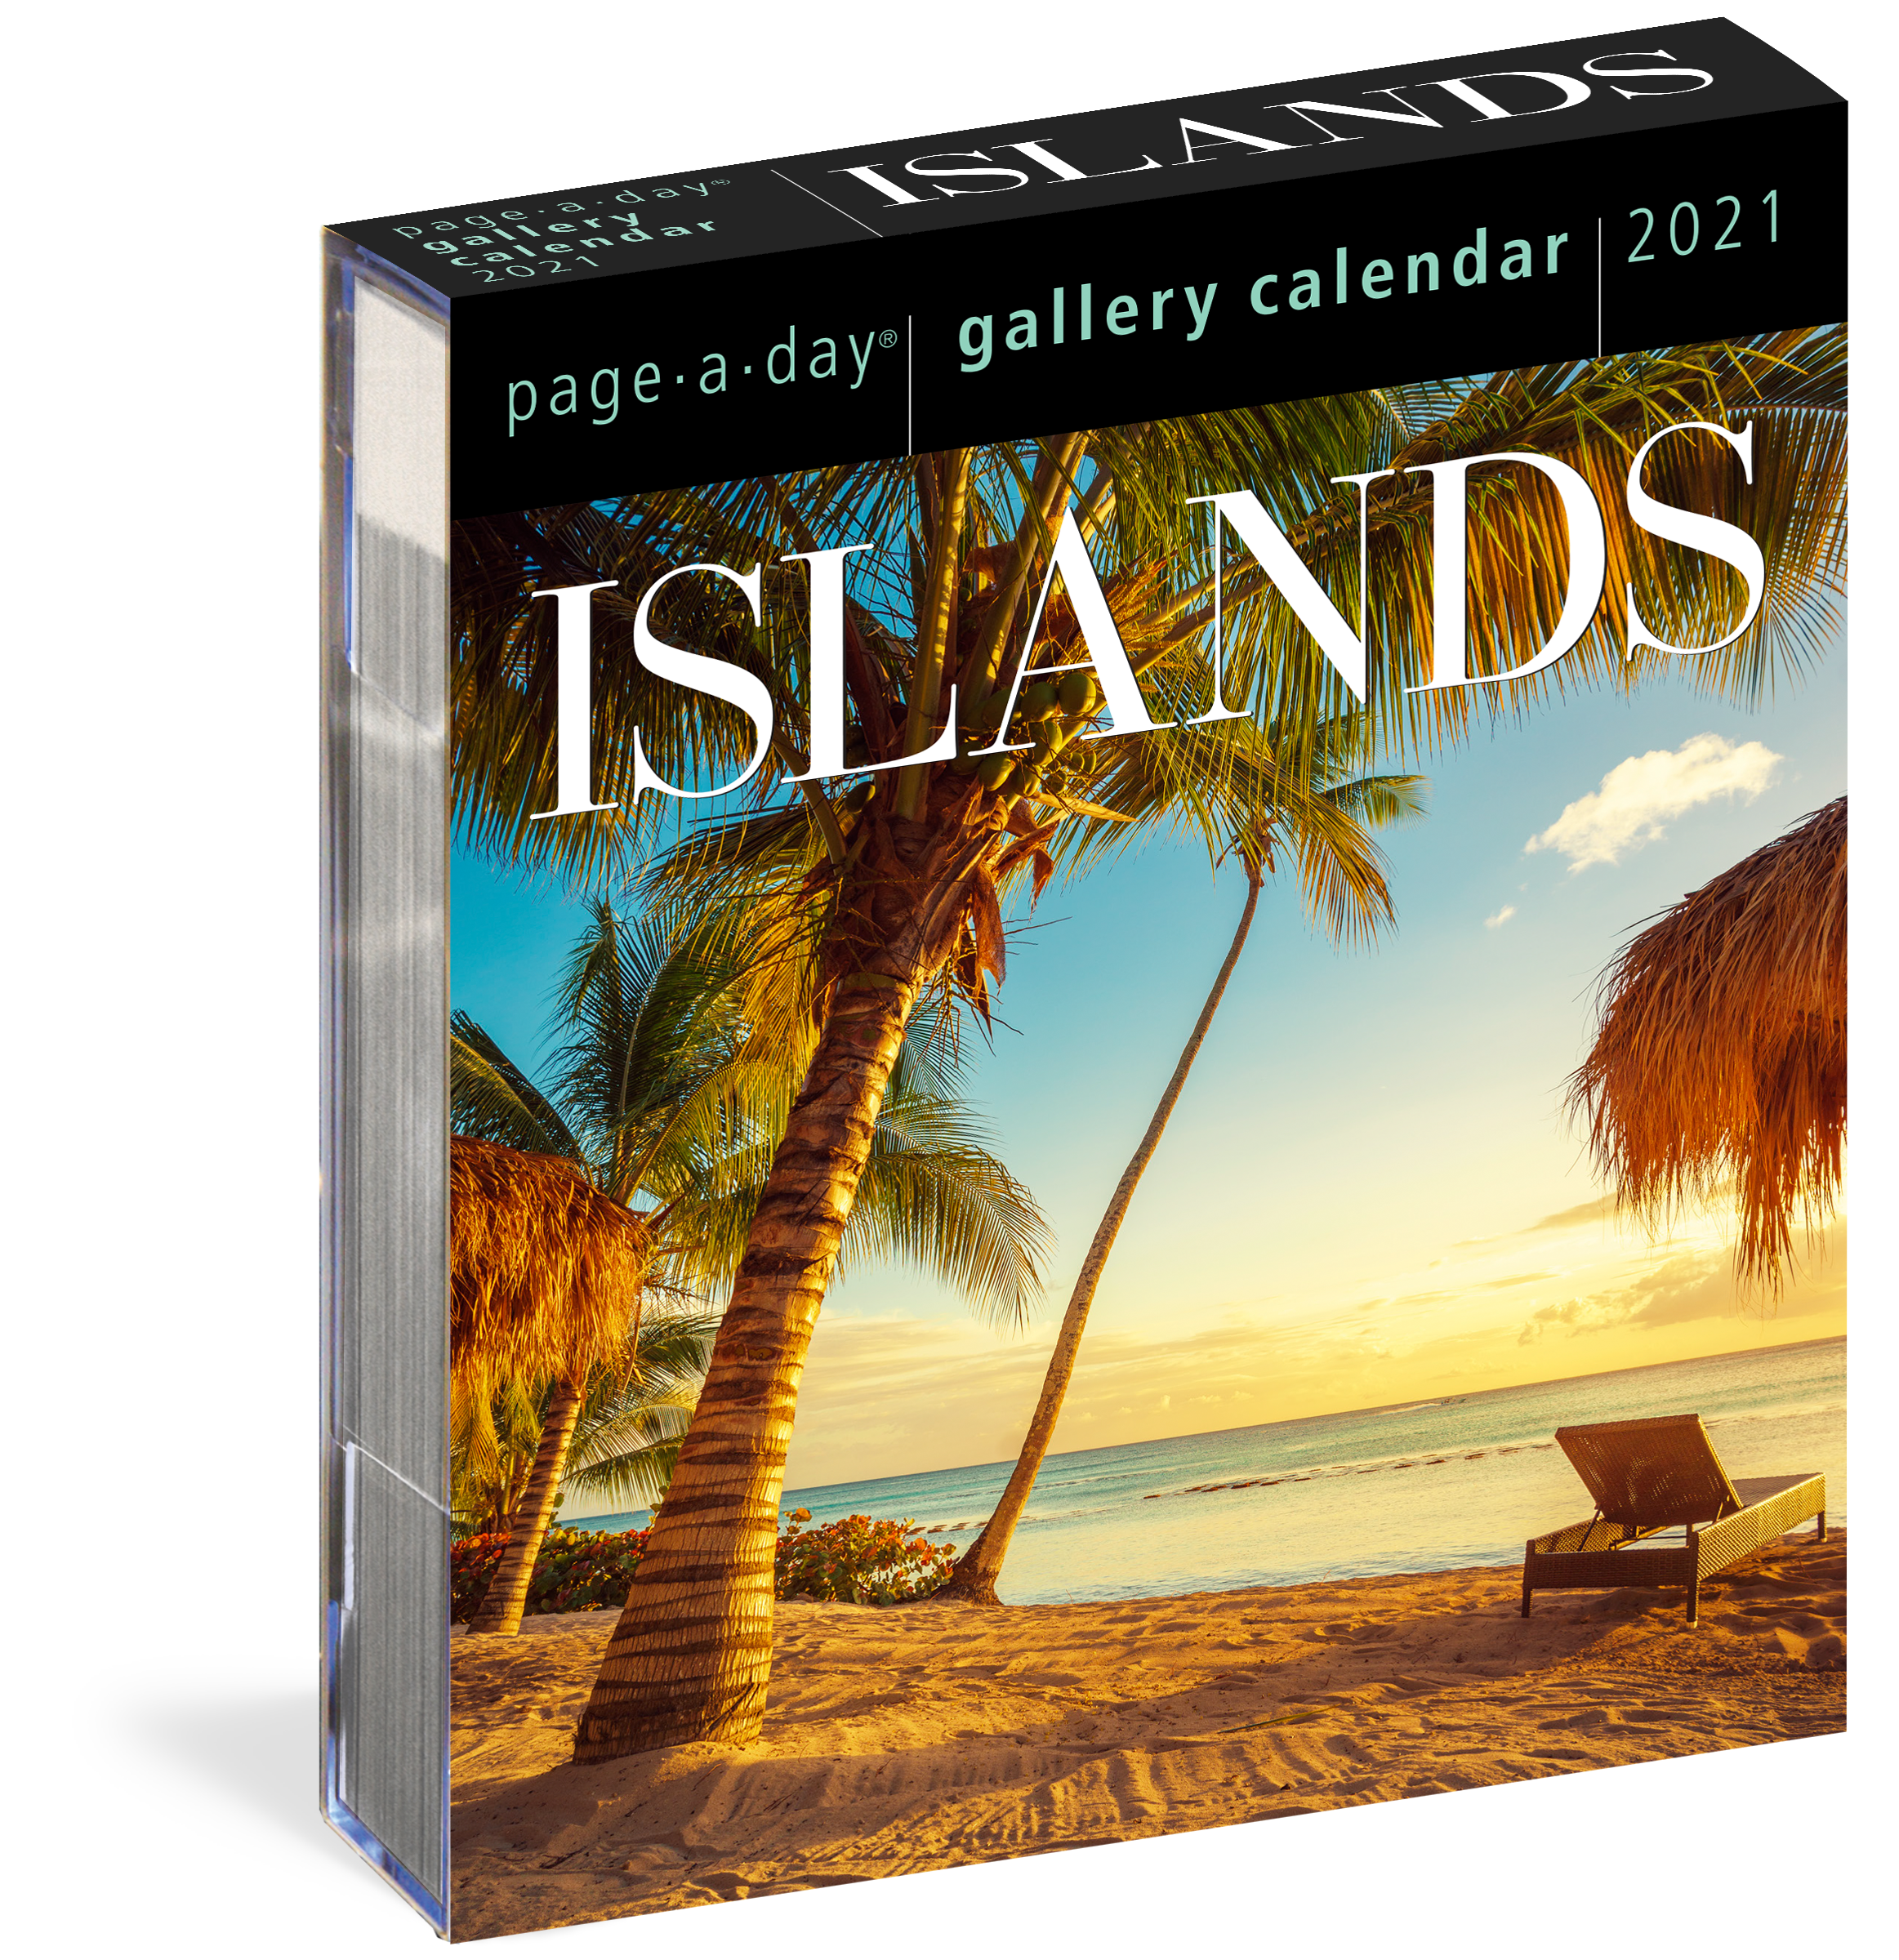 Islands Page A Day Gallery Calendar 2021   Workman Publishing